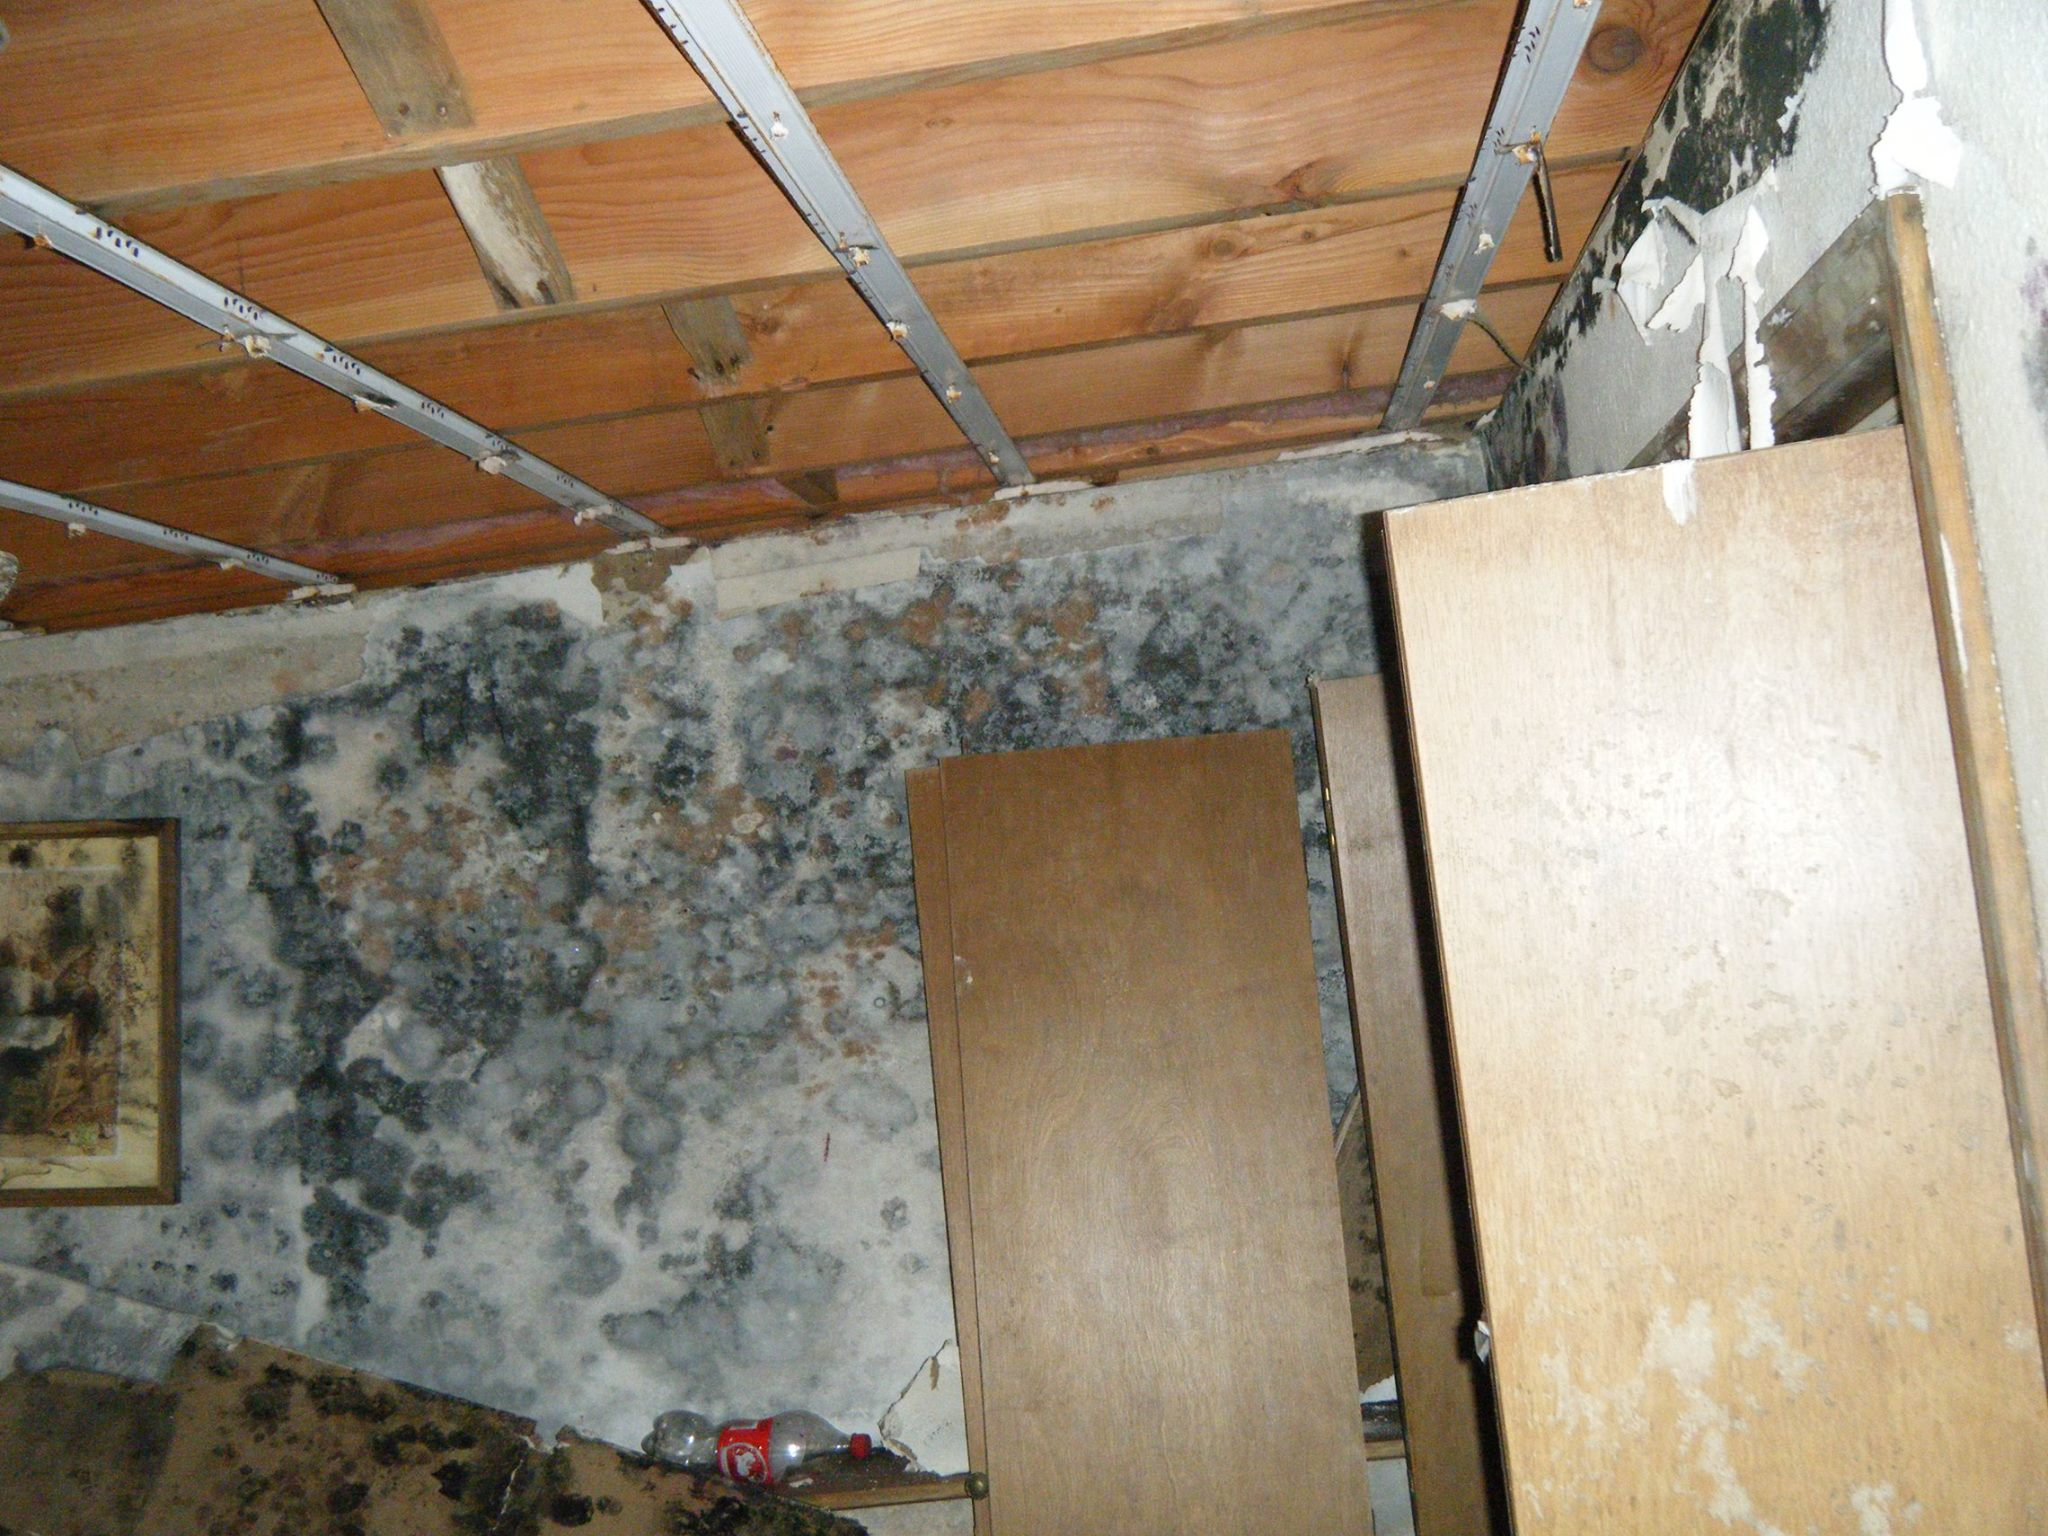 Abandoned home mold